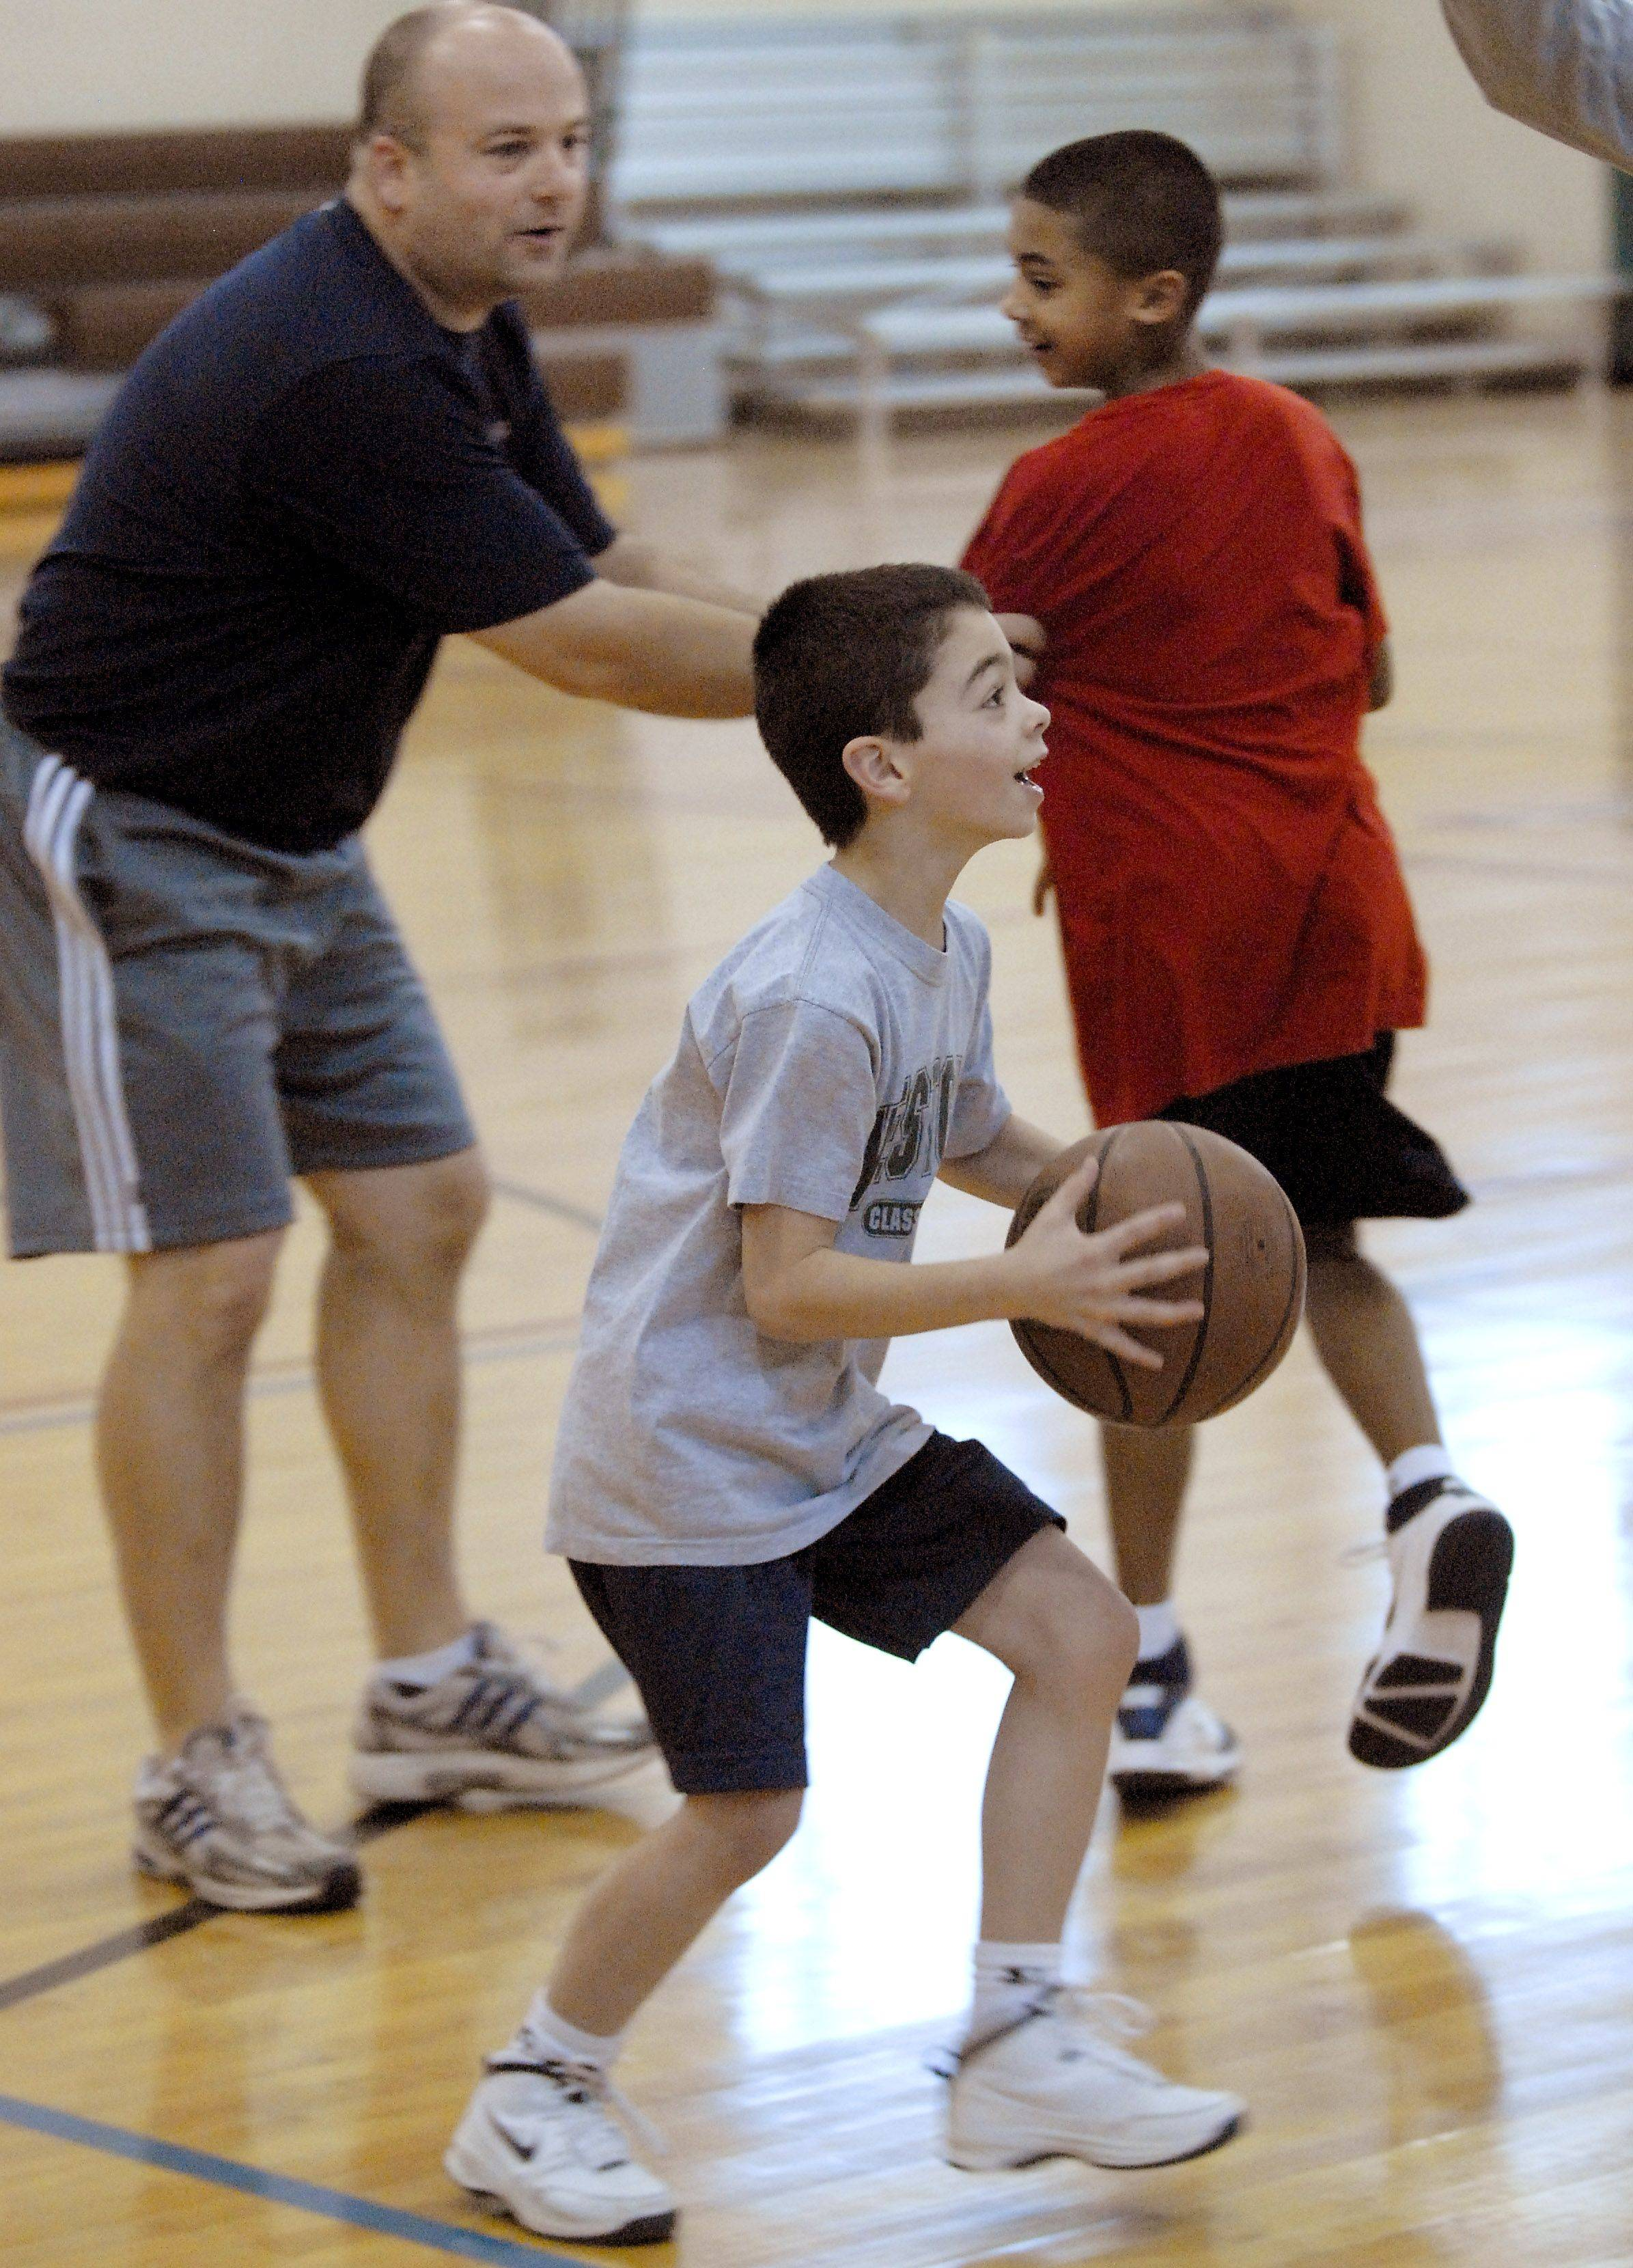 Luke Duffer, 7, gets past his dad Pete Duffer with help from Max Christie, 7, while playing basketball during open gym at Pioneer Park Tuesday in Arlington Heights. All three are from Arlington Heights.